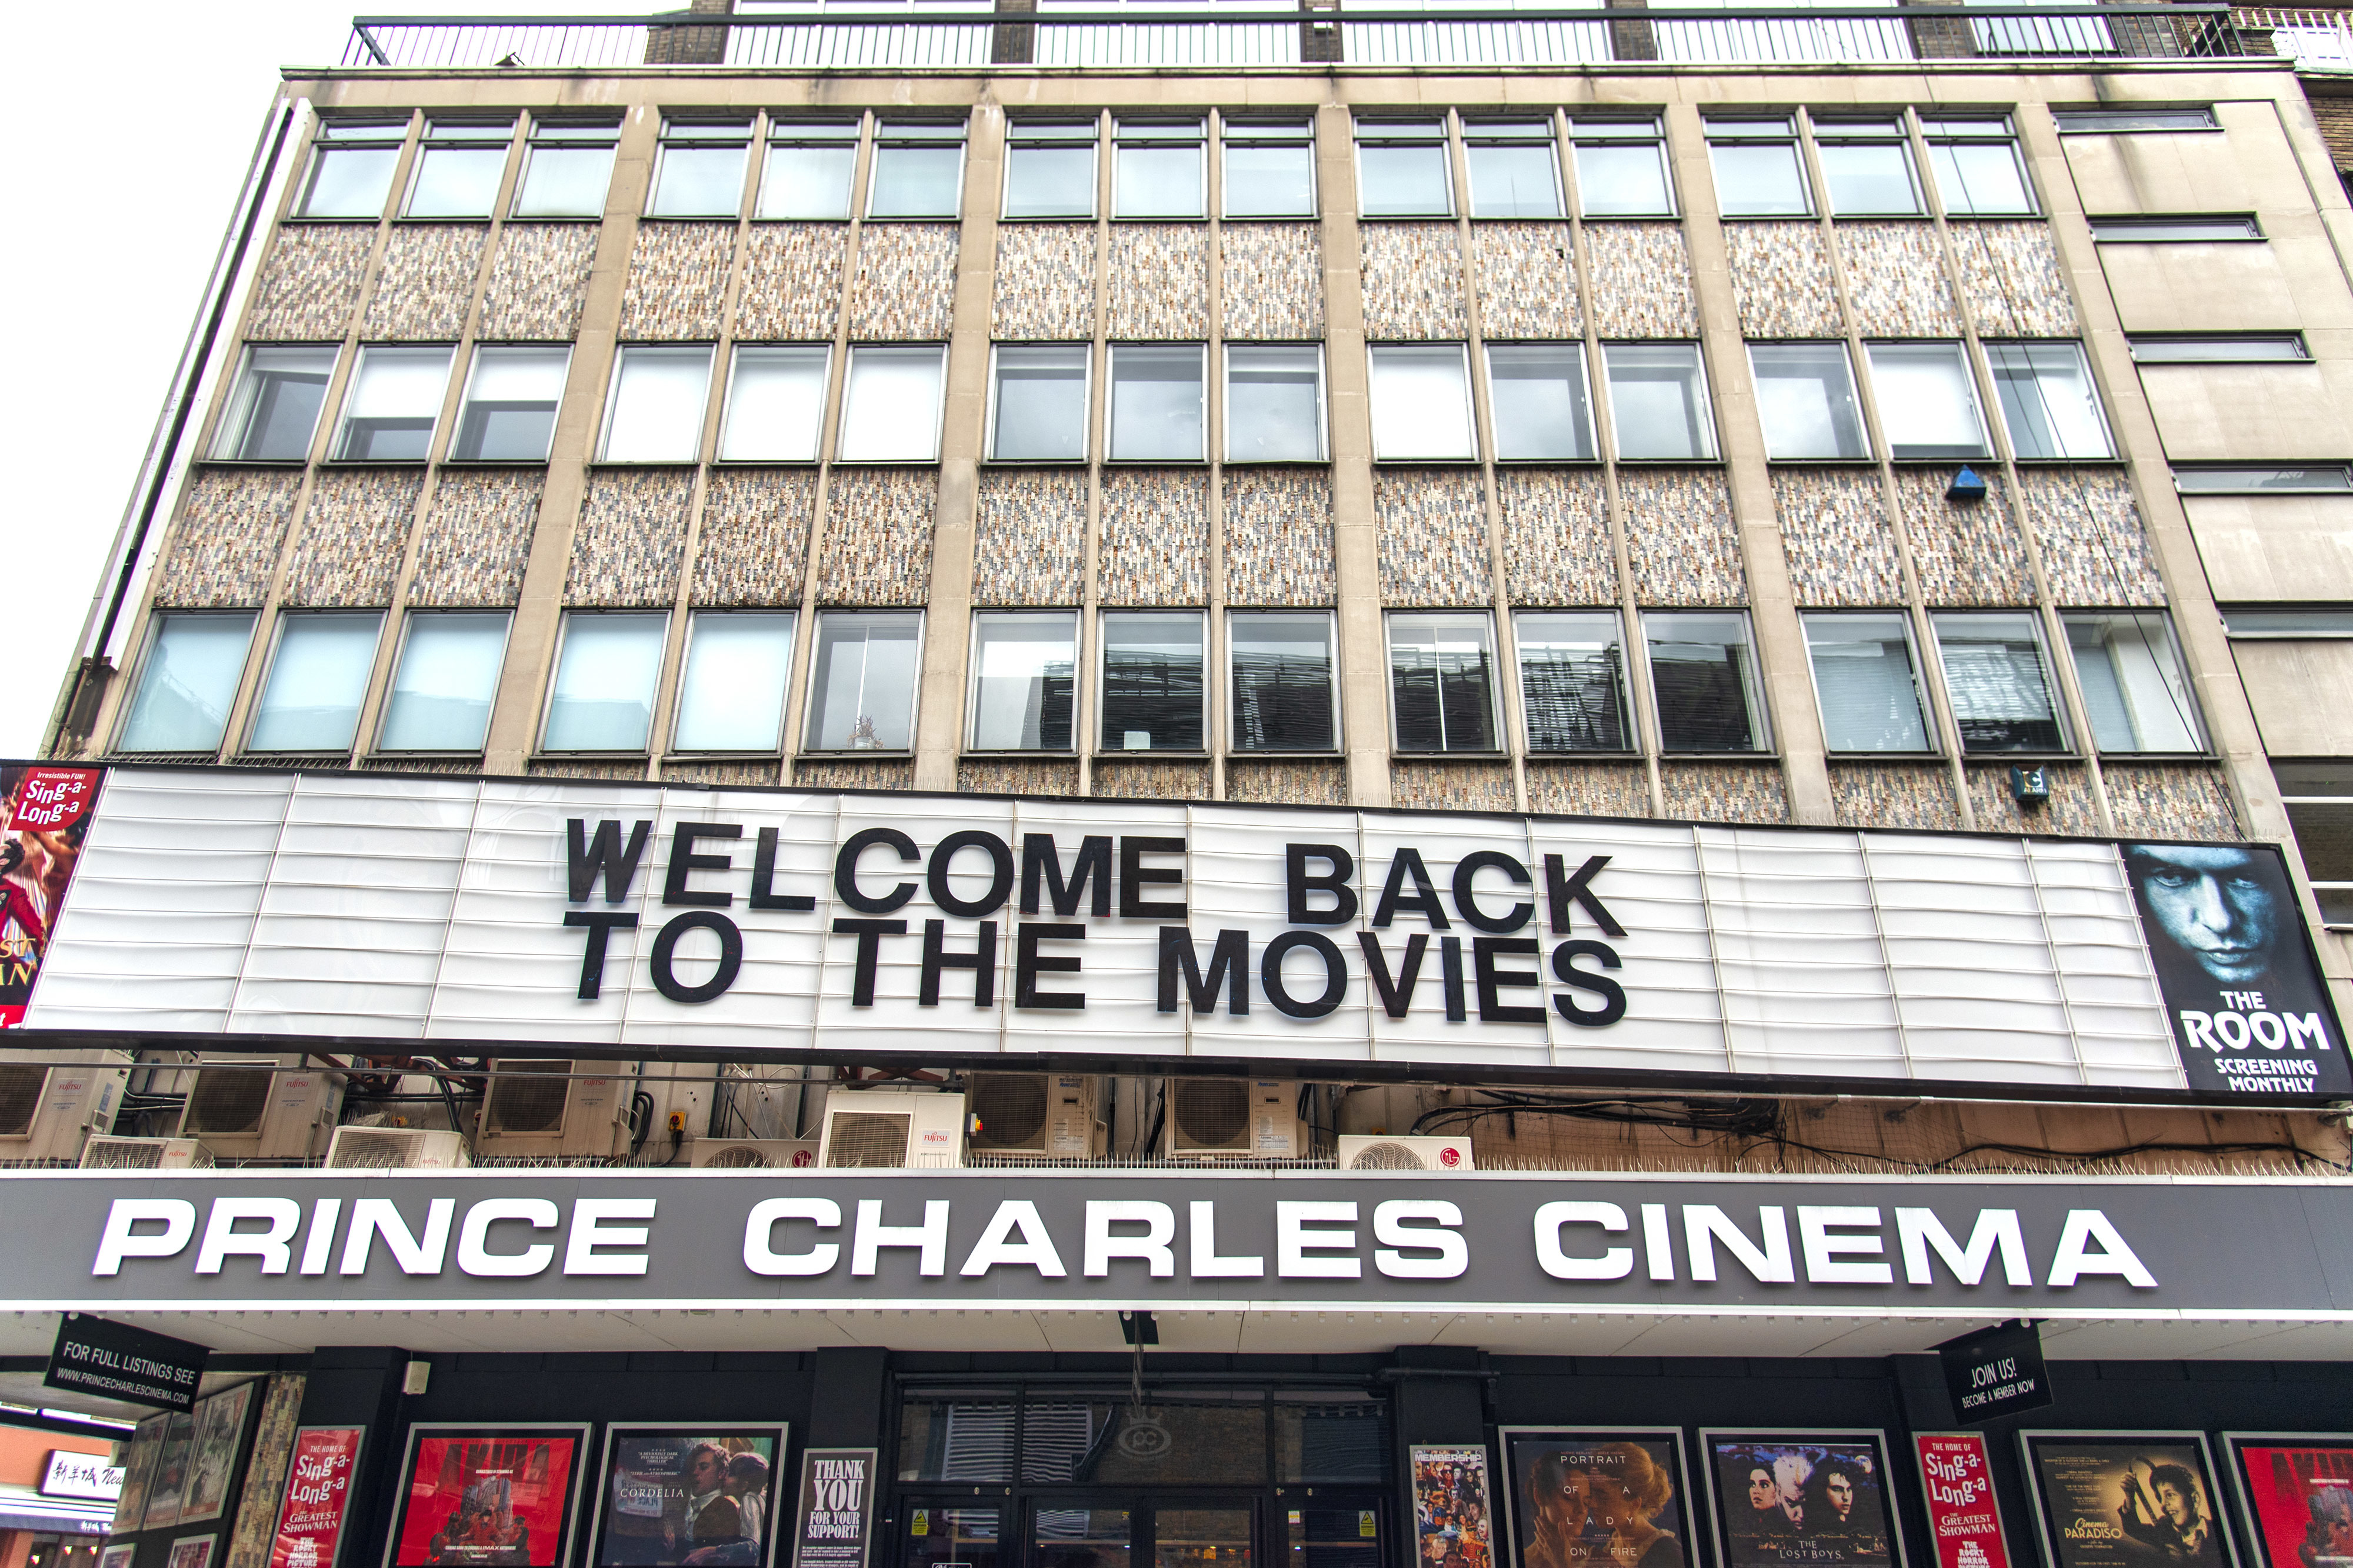 Prince Charles Cinema reopens in London, UK - 19 Oct 2020